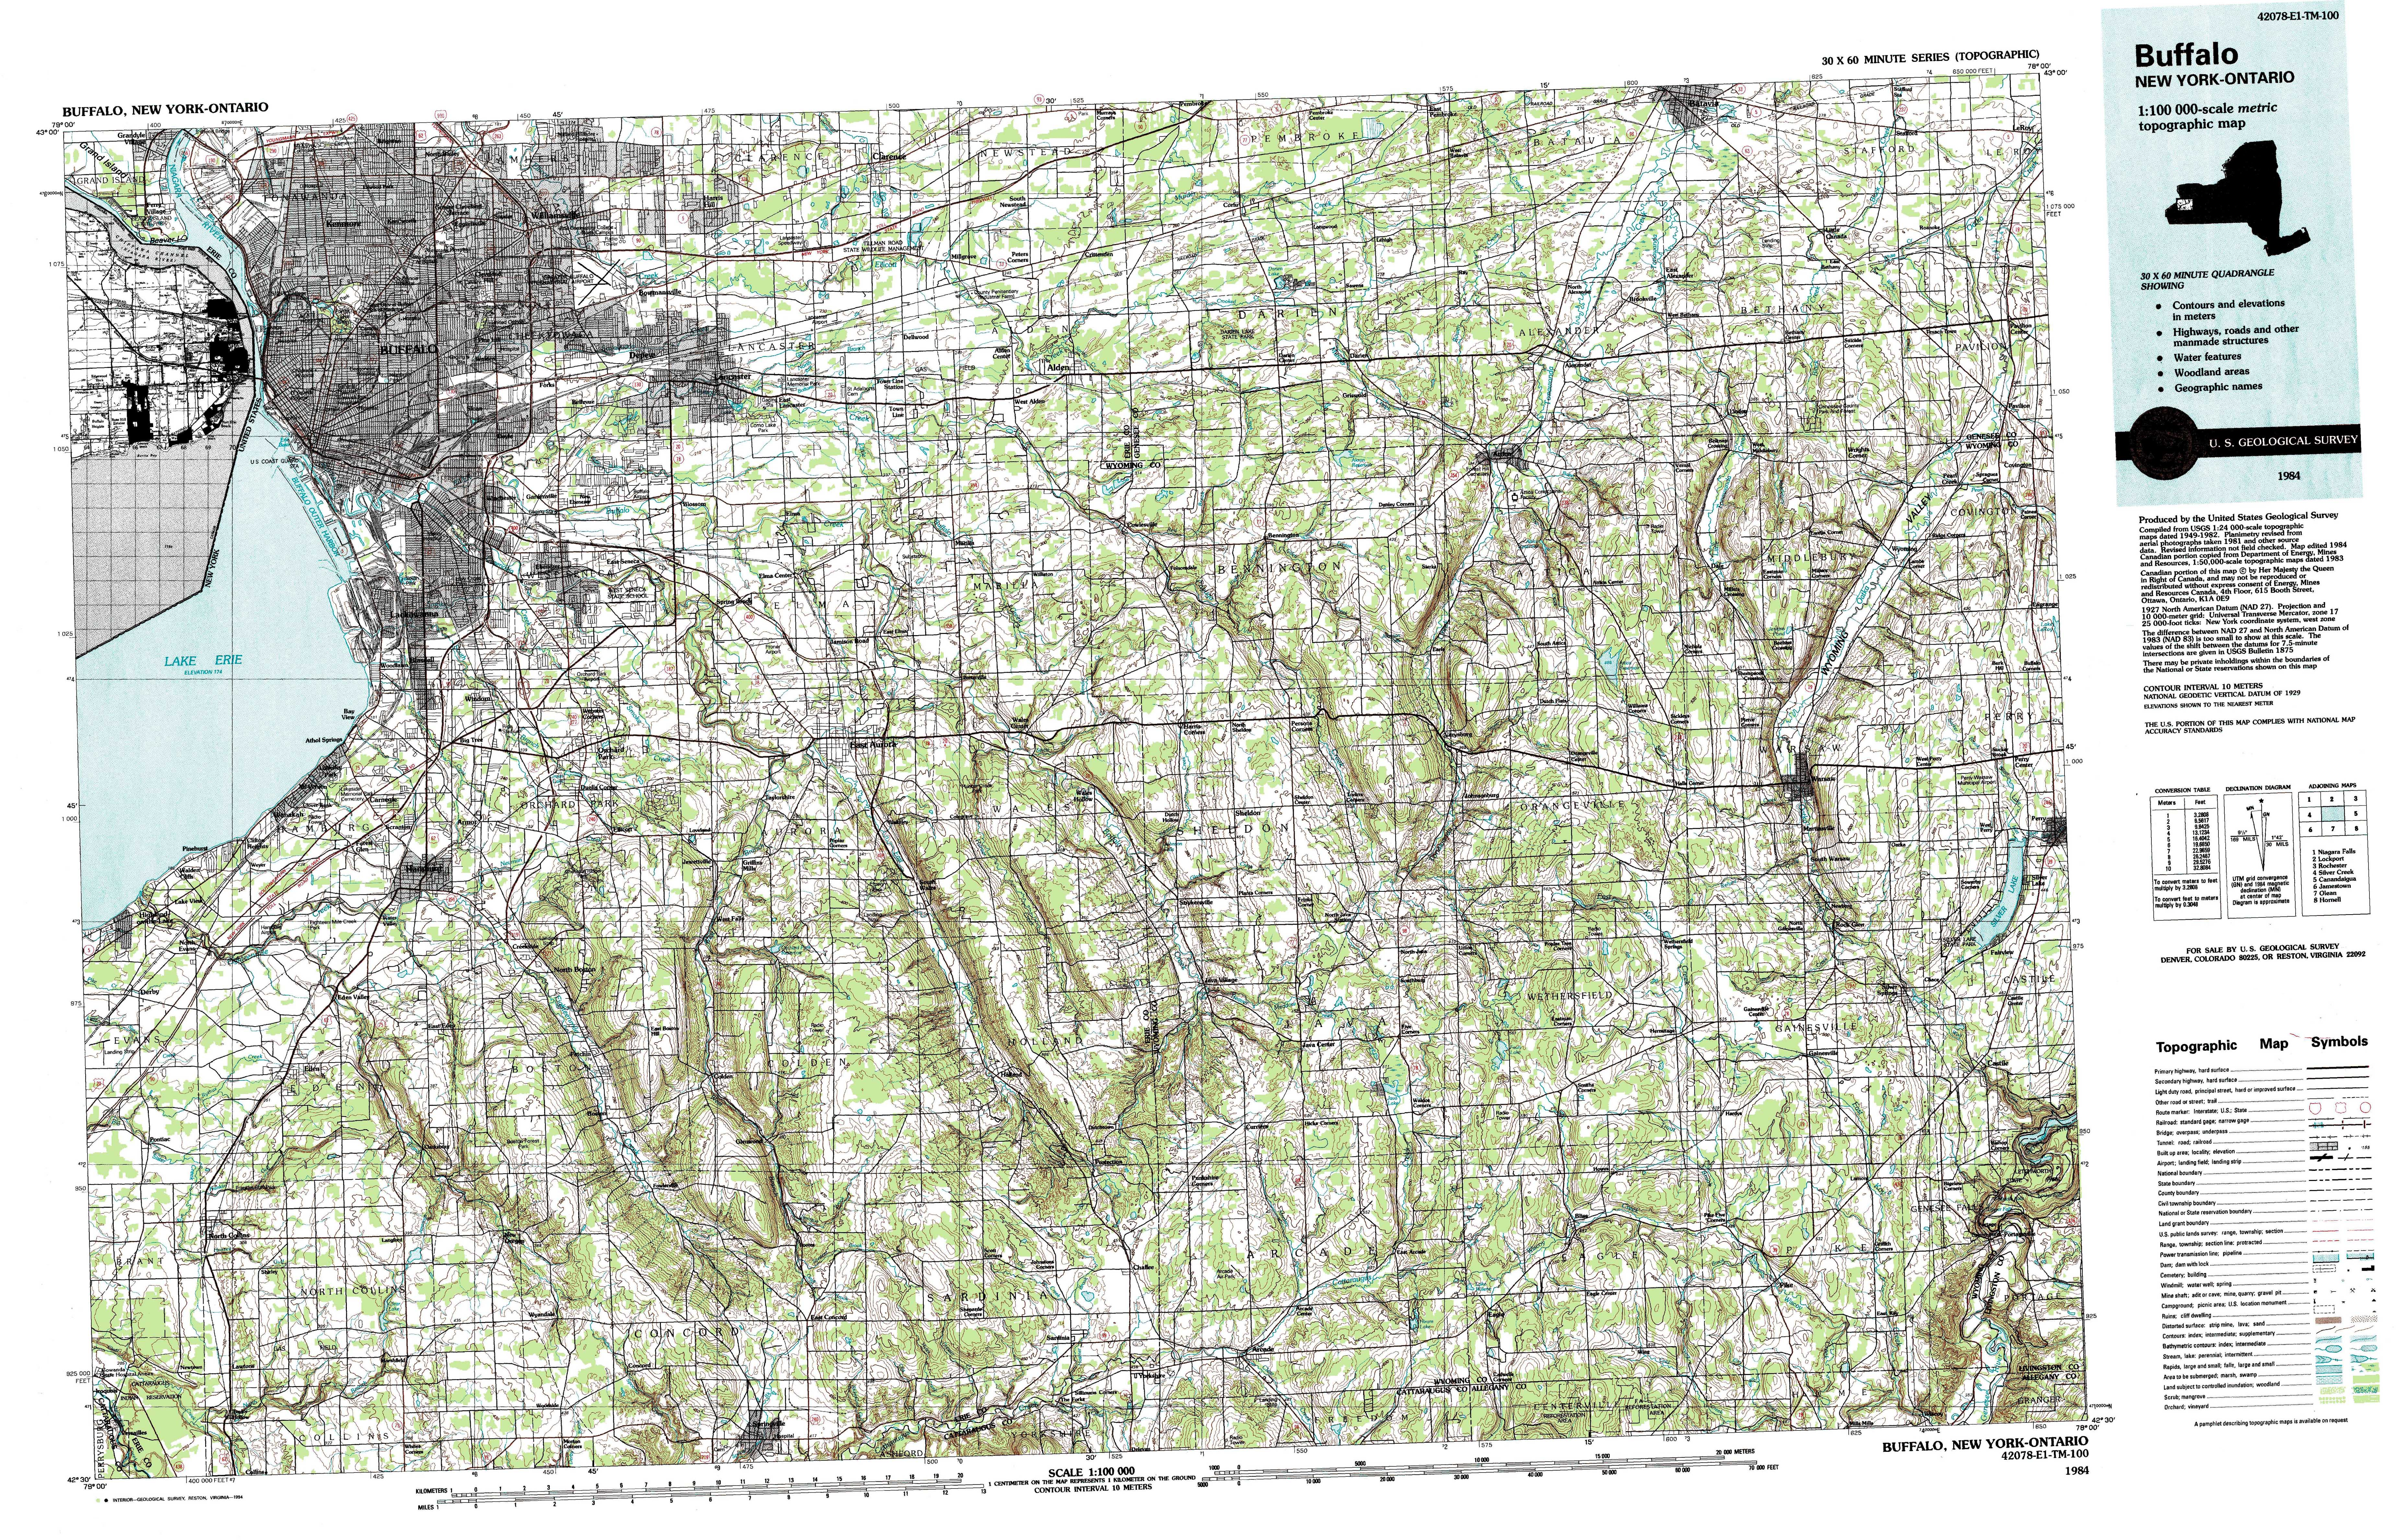 New York Topo Maps Topographic Maps - Mapof ny